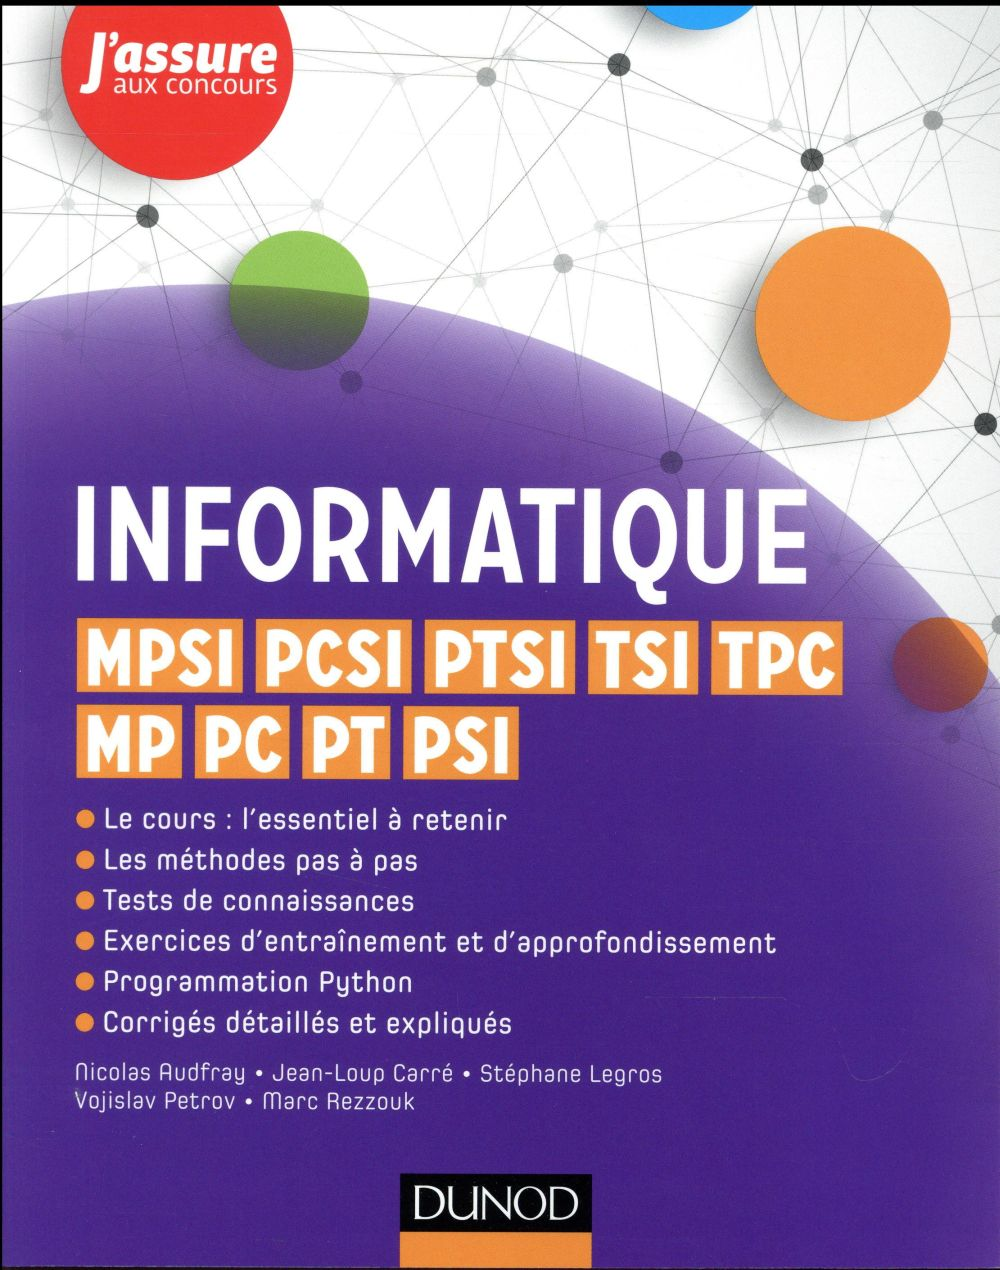 AUDFRAY+CARRE+LEGROS - INFORMATIQUE  -  MPSI, PCSI, PTSI, TSI, TPC, MP, PC, PT, PSI